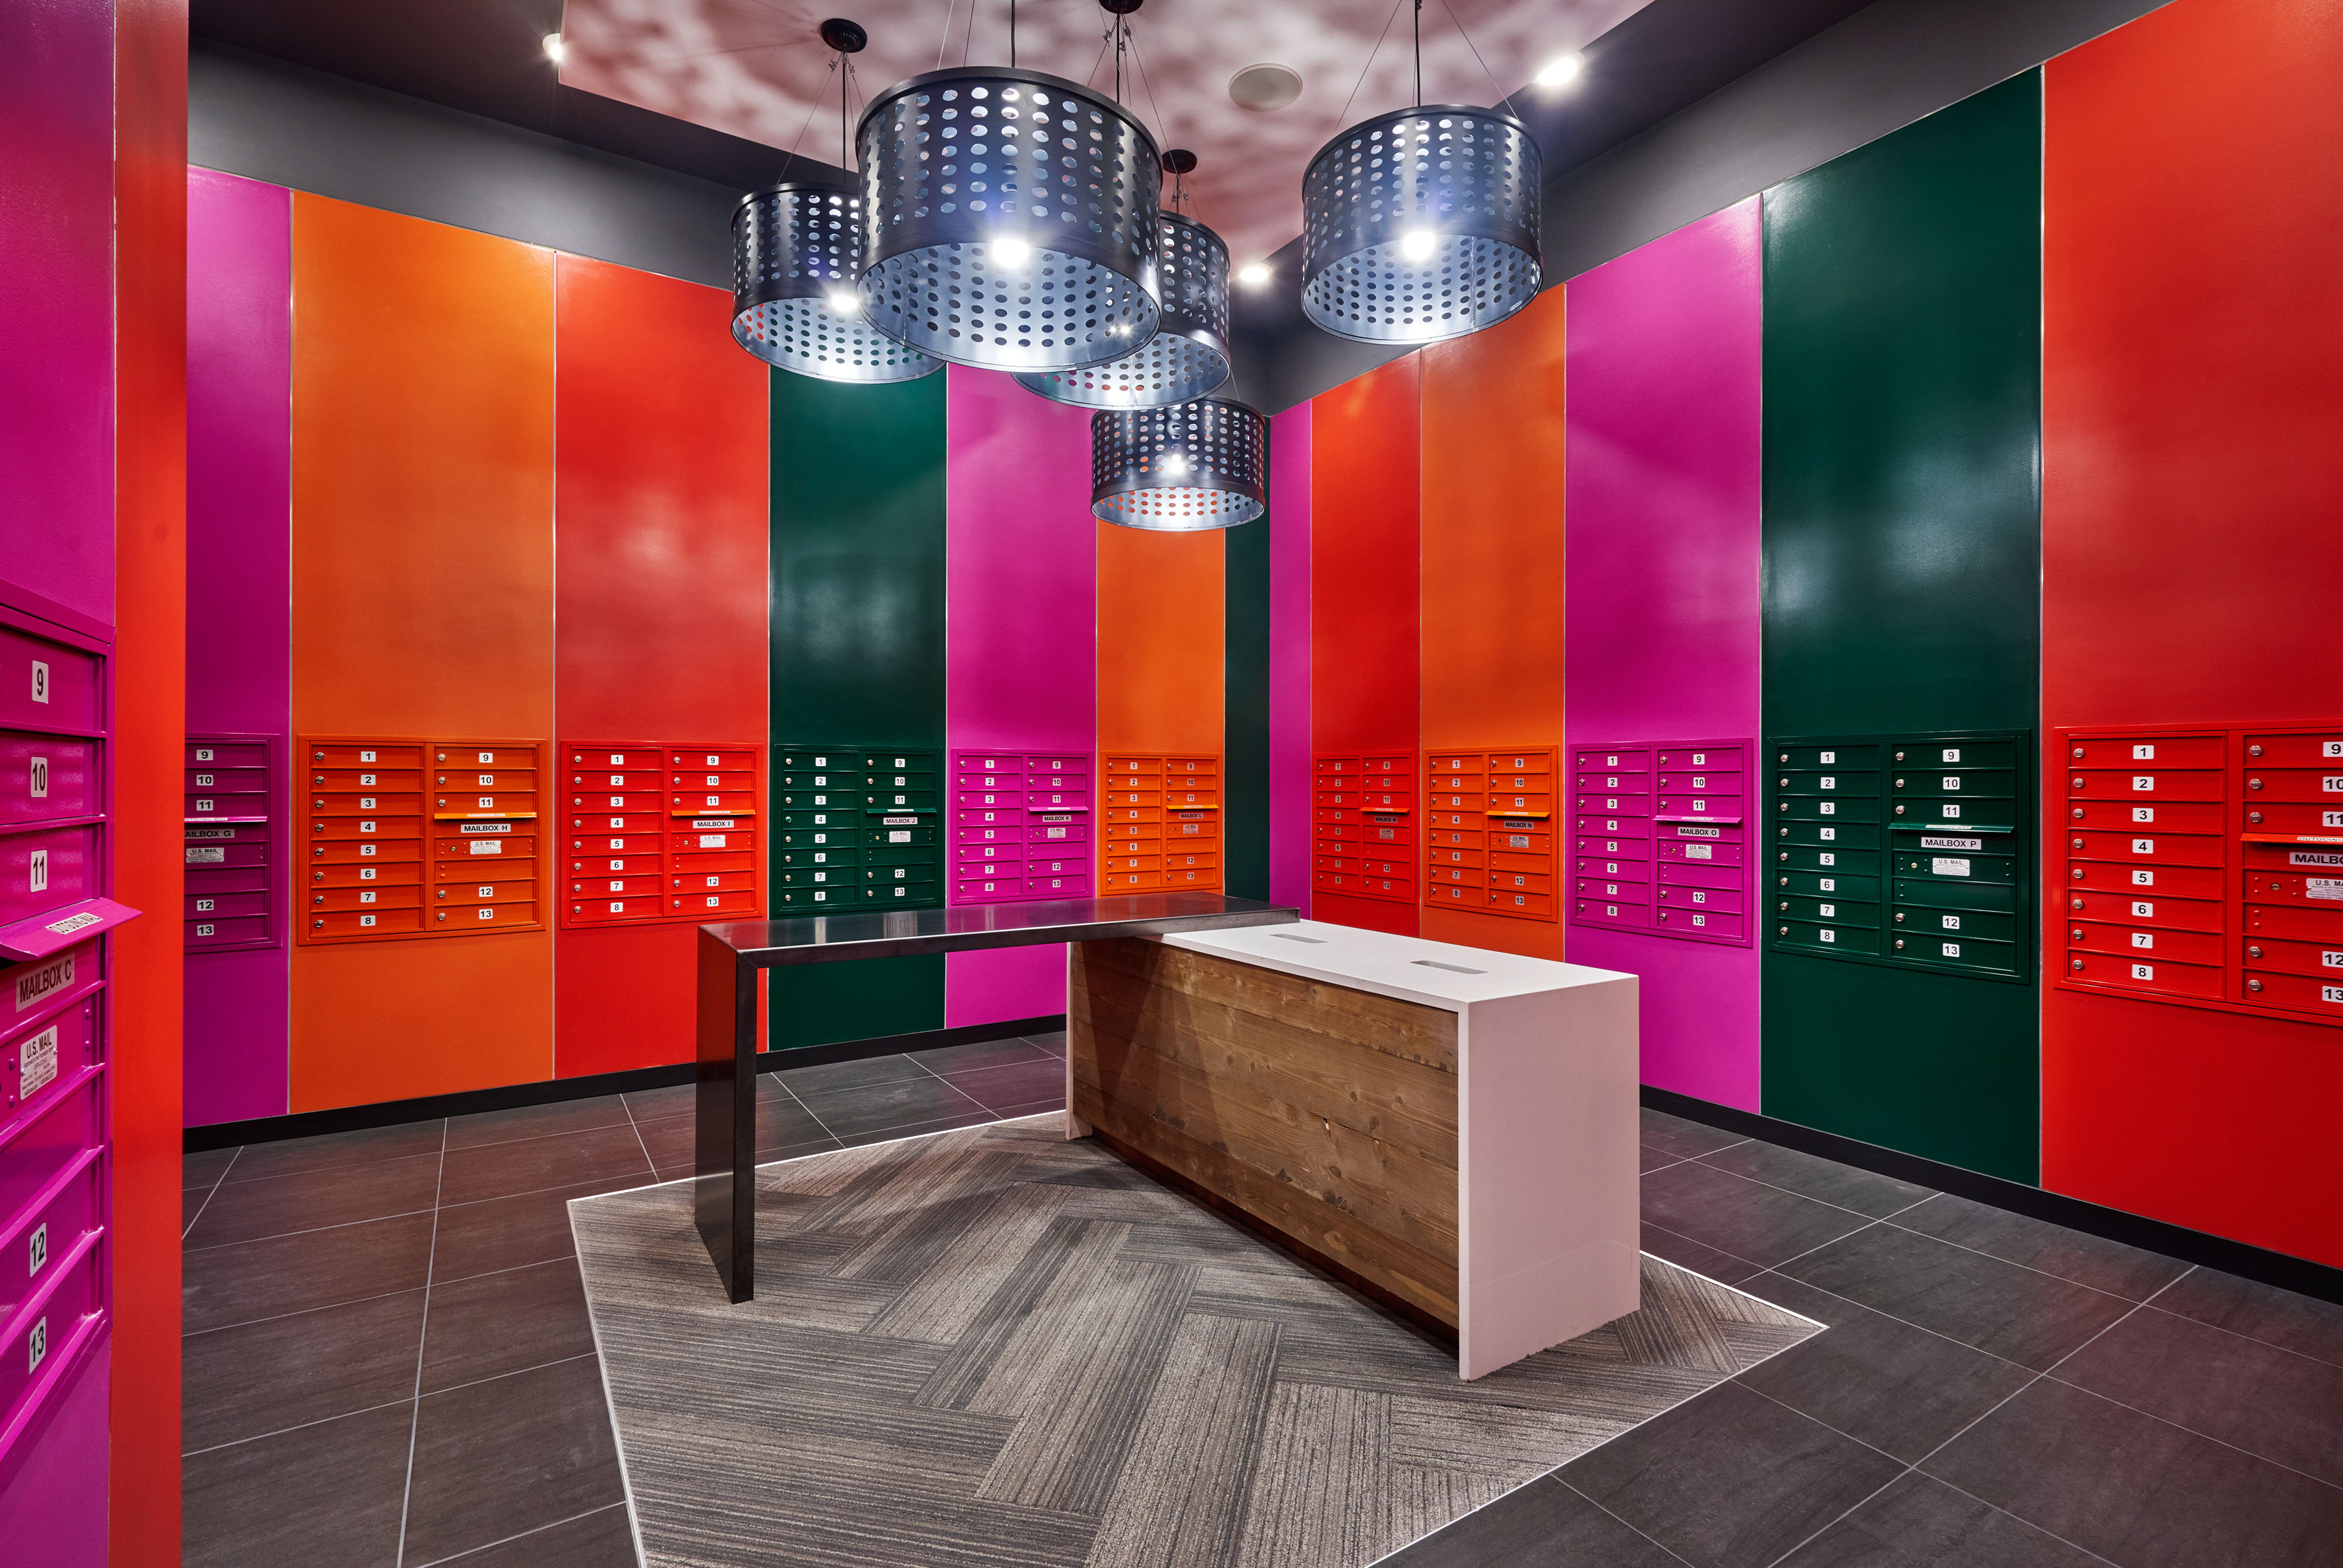 Portland interior design firm uses creative color - 10 interesting facts about interior design ...